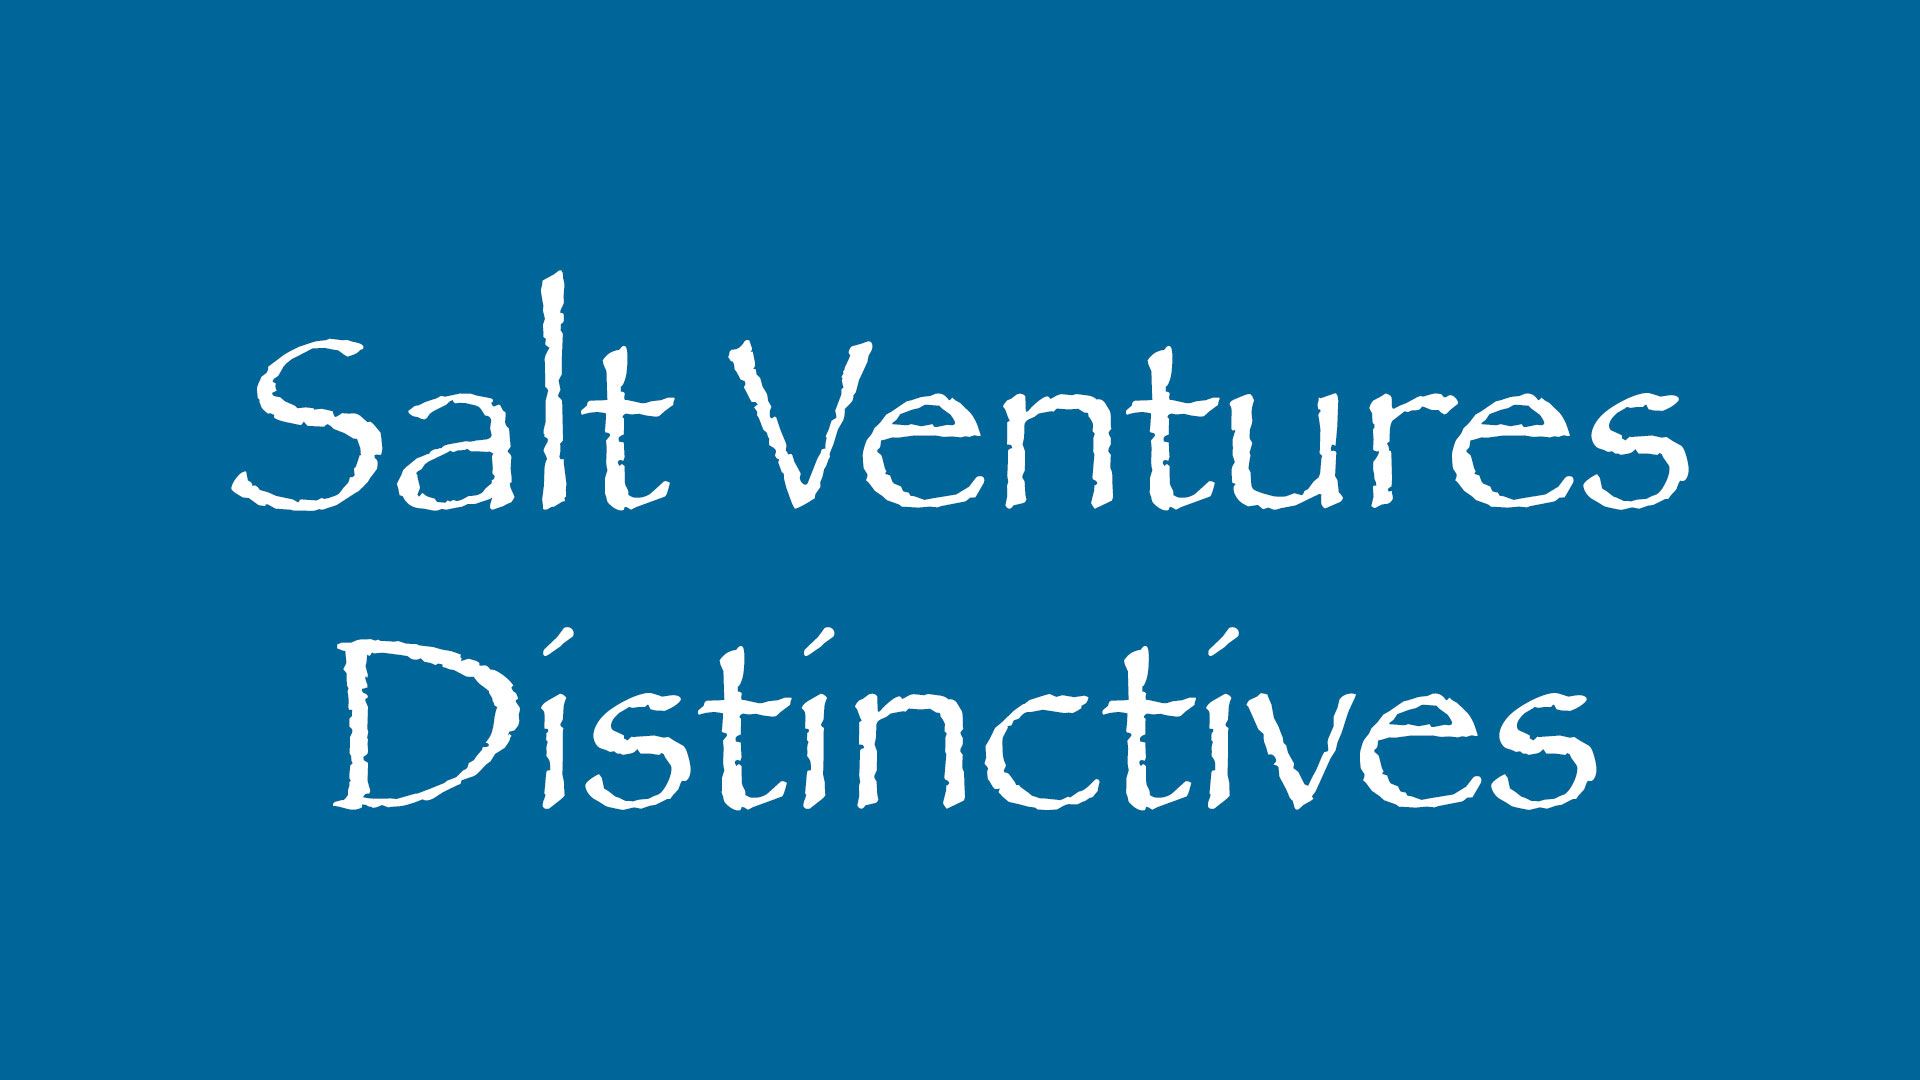 salt ventures distinctives banner